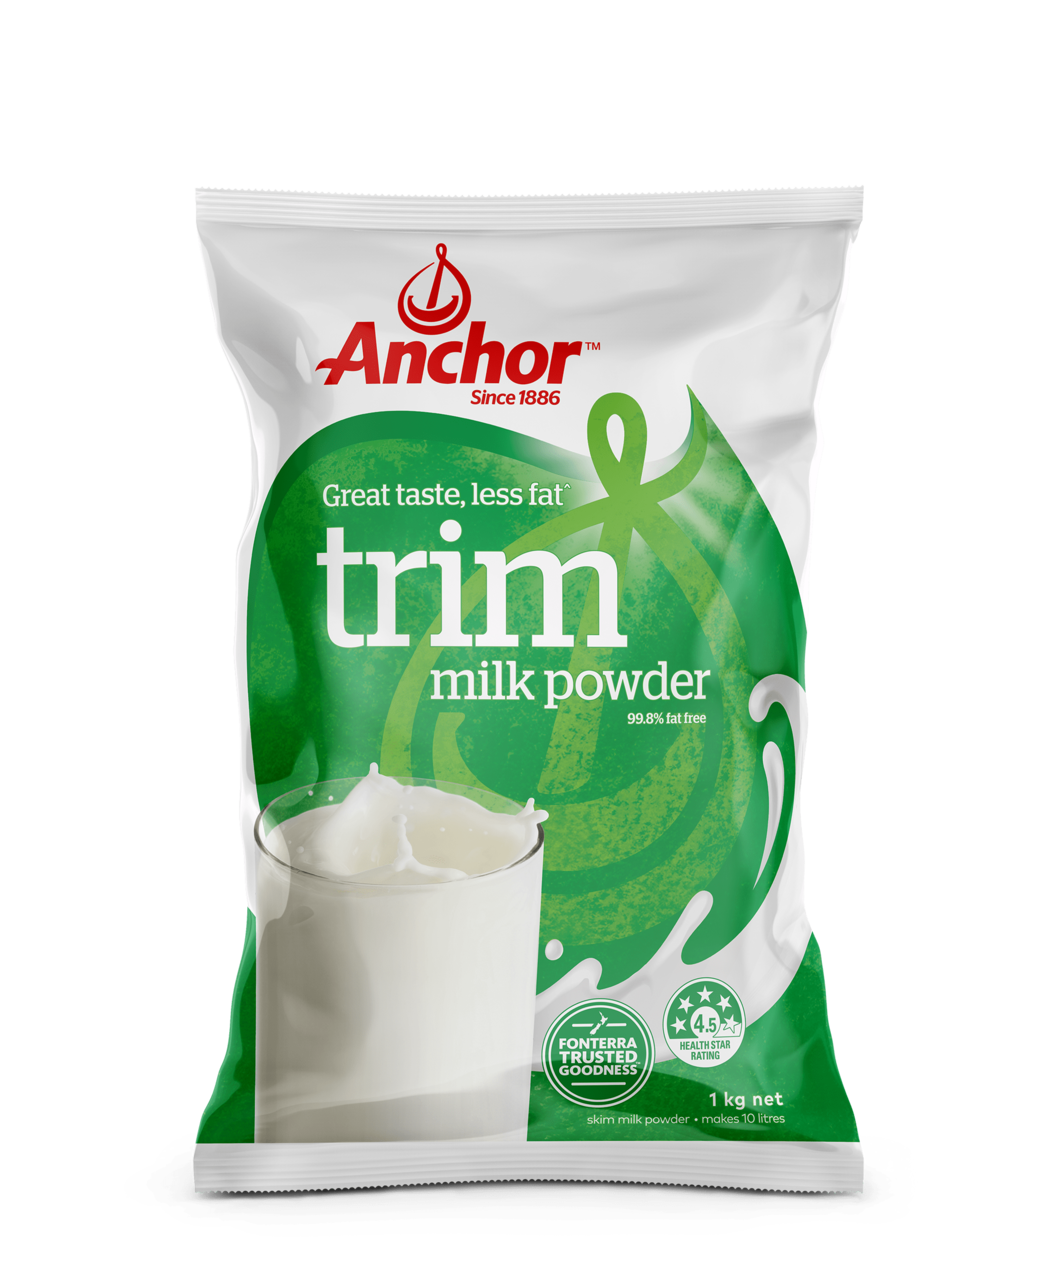 Anchor Instant Skim Milk powder 1kg pack